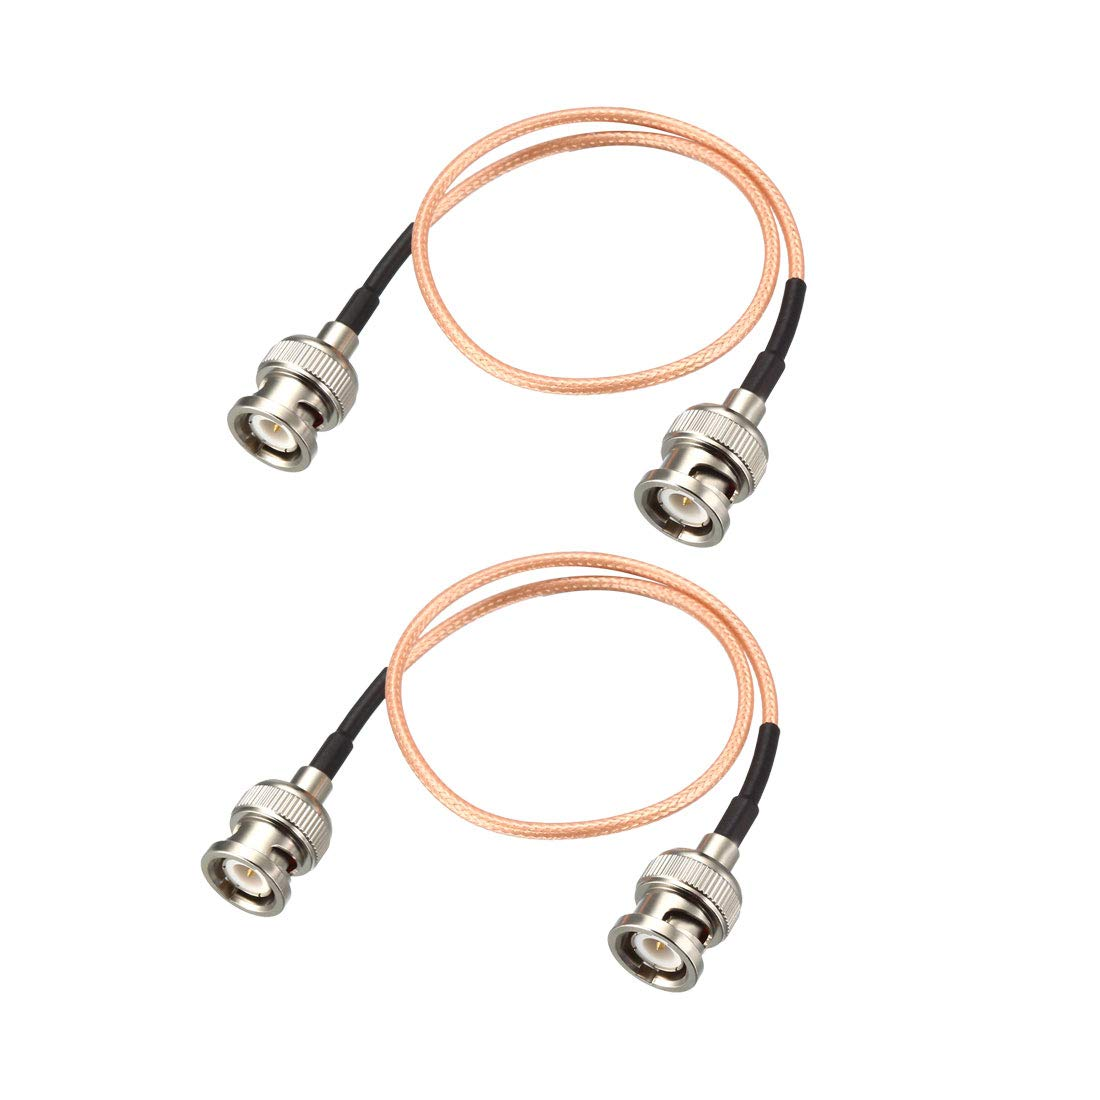 uxcell BNC Male to BNC Male Coax Cable RG316 RF Coaxial Cable 50 Ohm 1.5 Feet 2pcs for Video Signals,CCTV,DVR,Camera